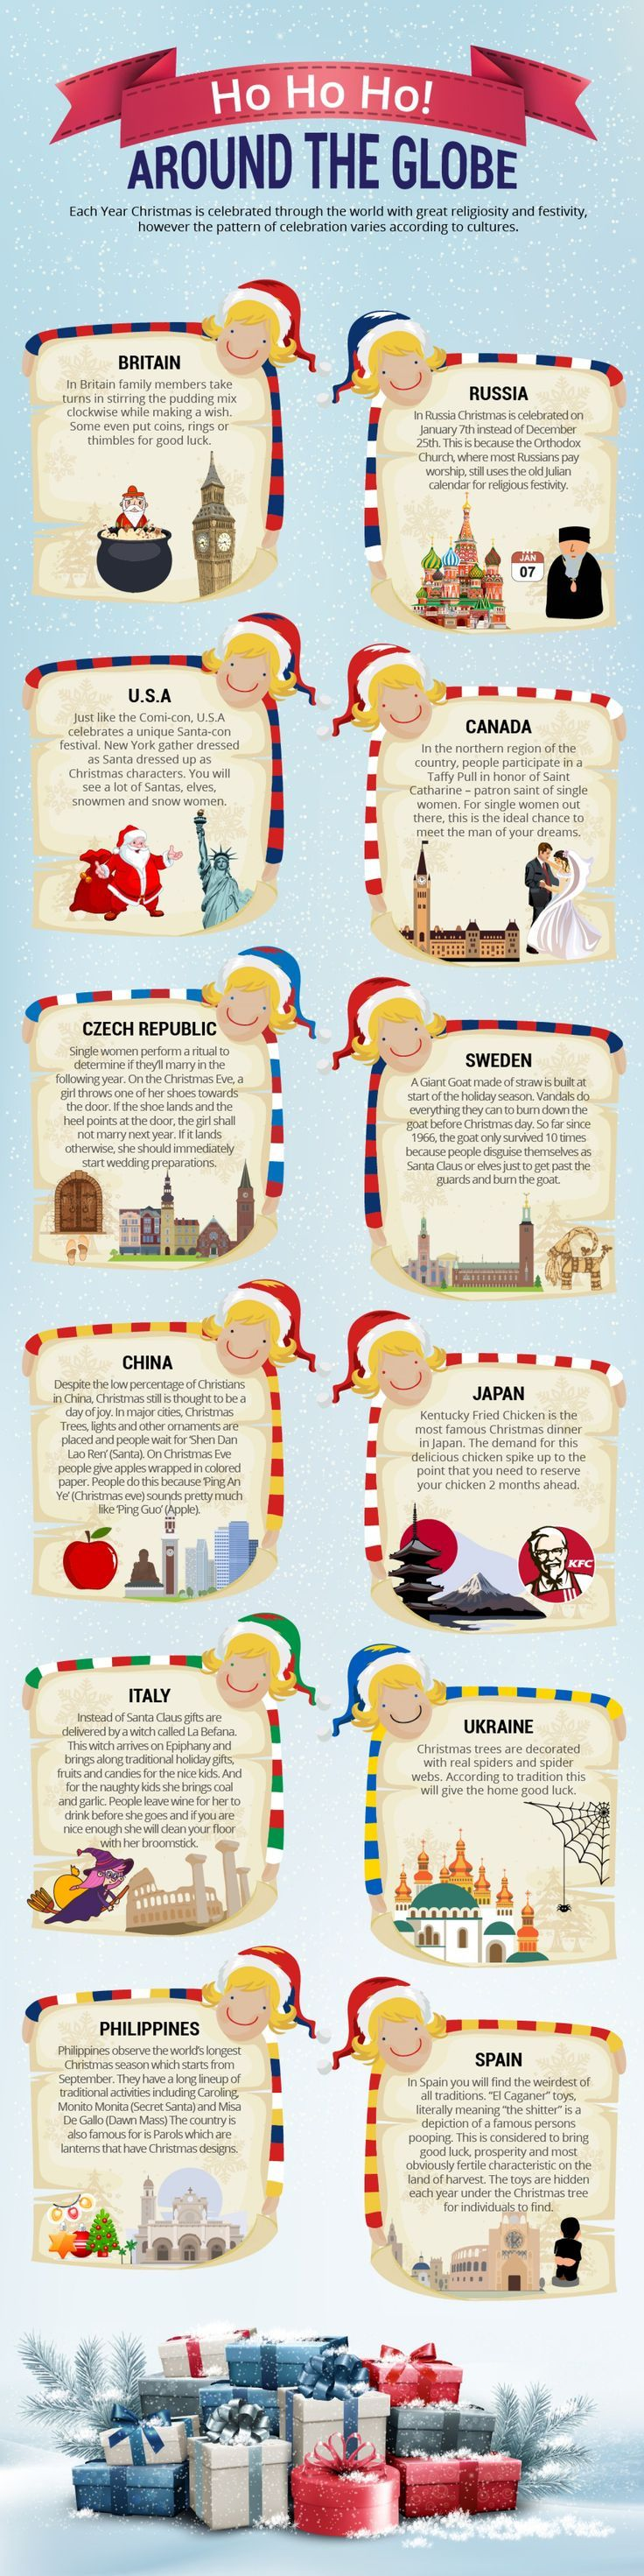 Christmas in Russia Infographic | Spirit of Christmas Yet to Come ...